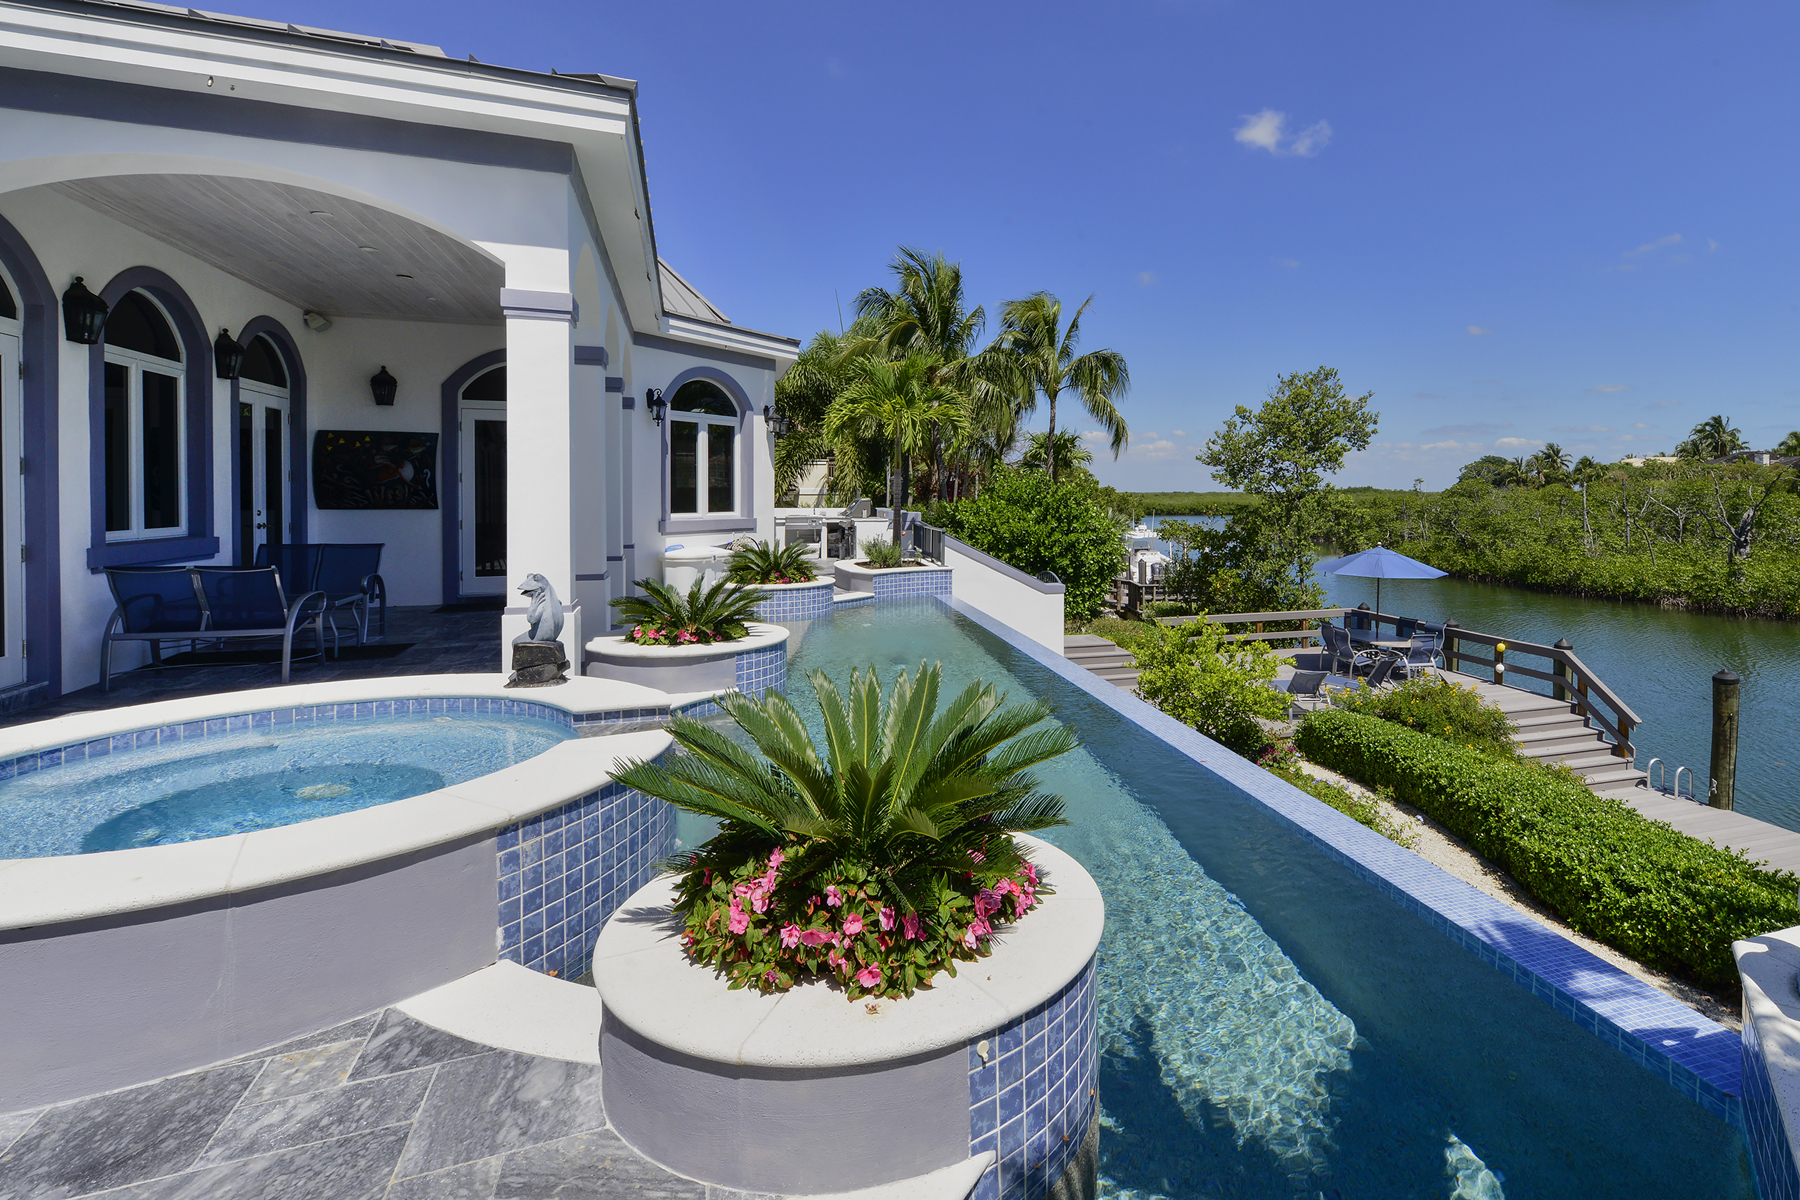 Moradia para Venda às Custom Built Waterfront Home at Ocean Reef 17 North Pelican Drive Ocean Reef Community, Key Largo, Florida, 33037 Estados Unidos